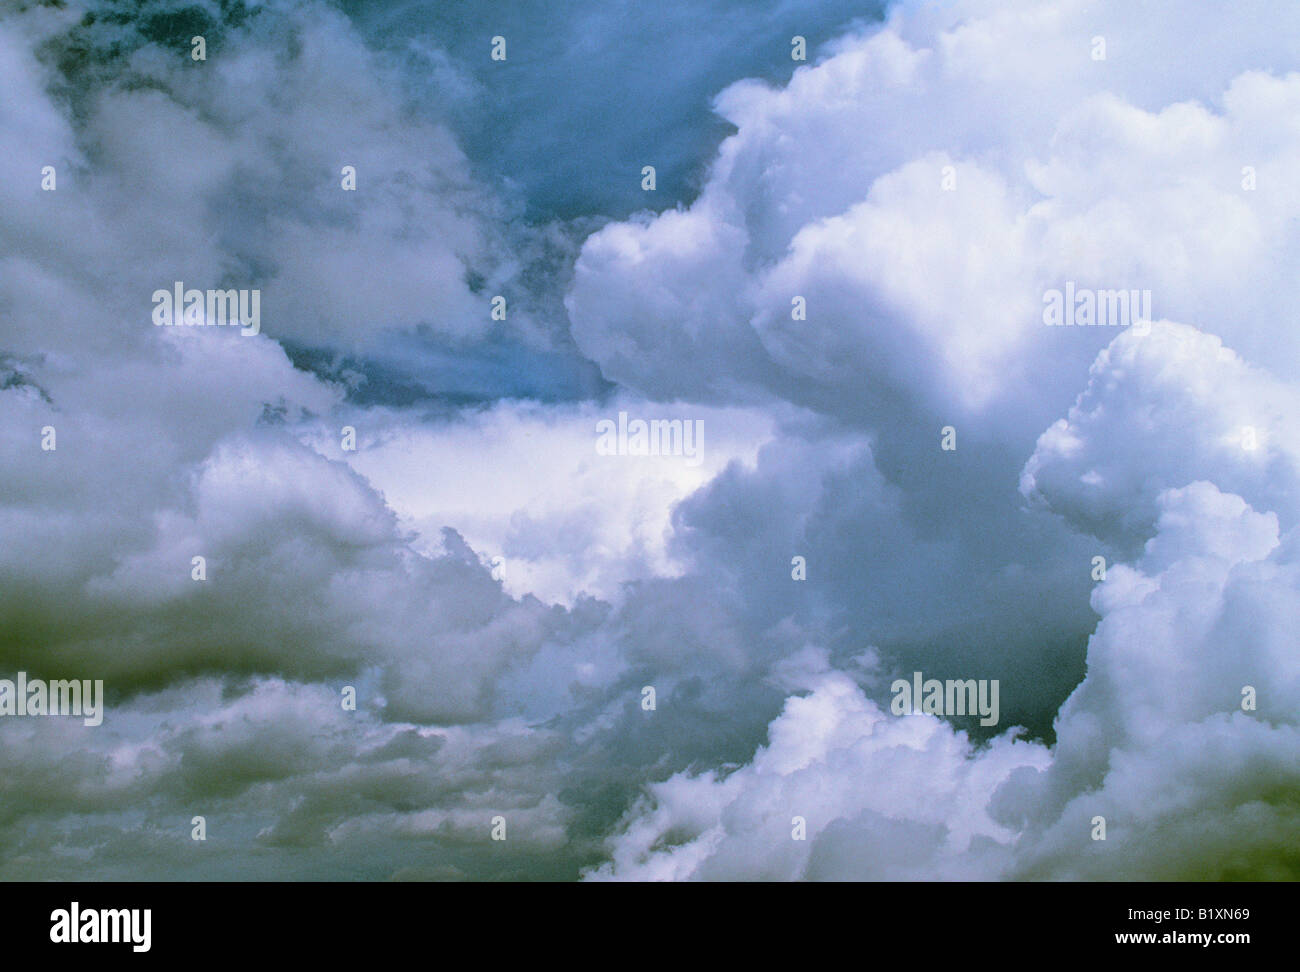 Storm Clouds Dramatic Sky Cloudy Day Sandra Baker New Mexico - Stock Image